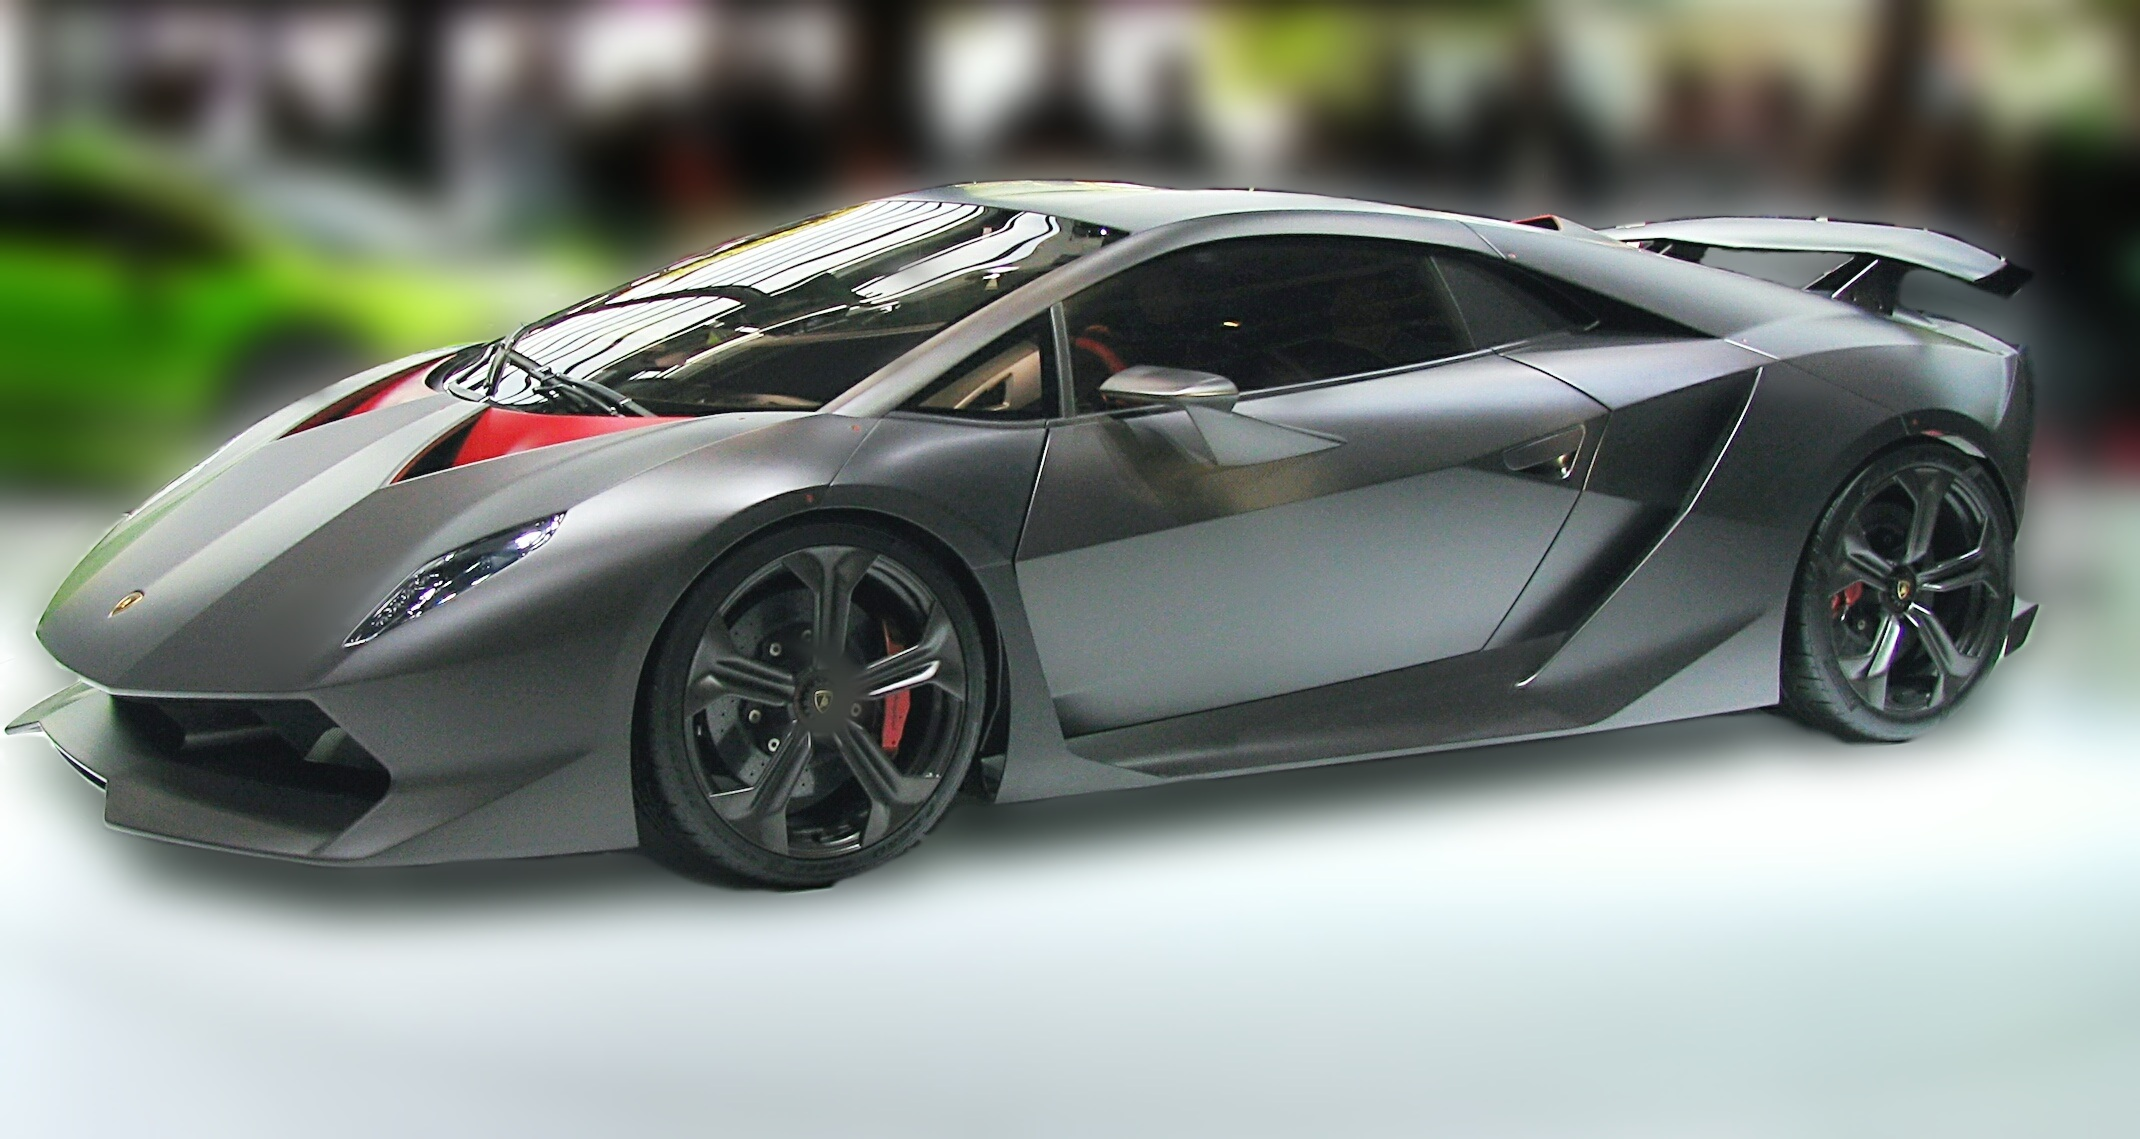 Lamborghini Sesto Elemento - Dream Cars of the Past and Present